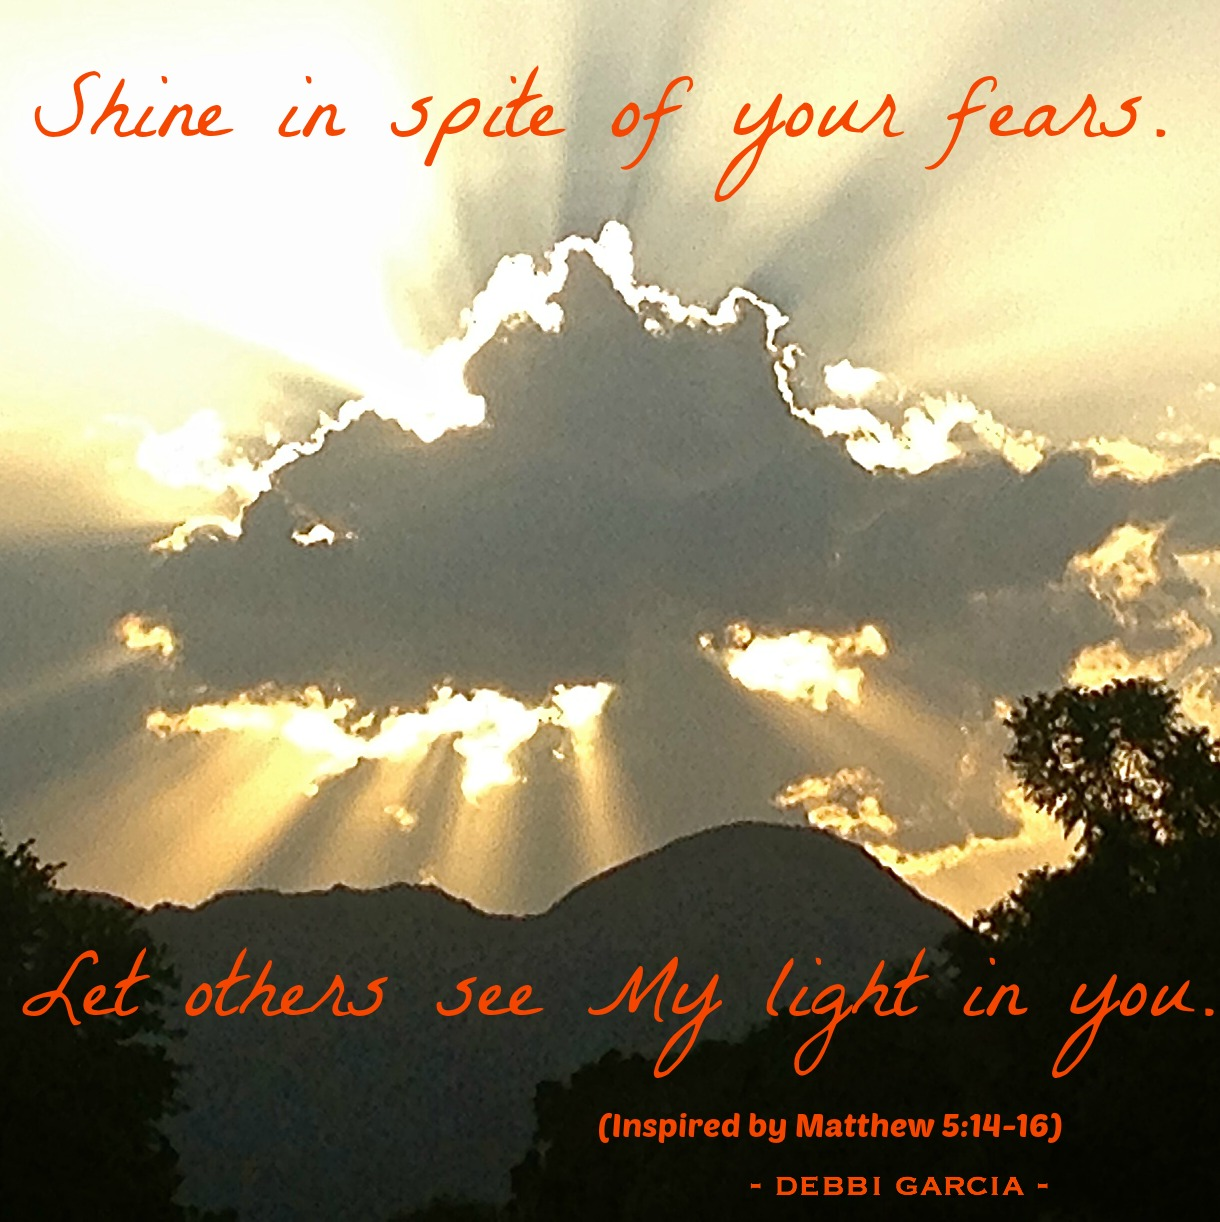 Shine in spite of your fears